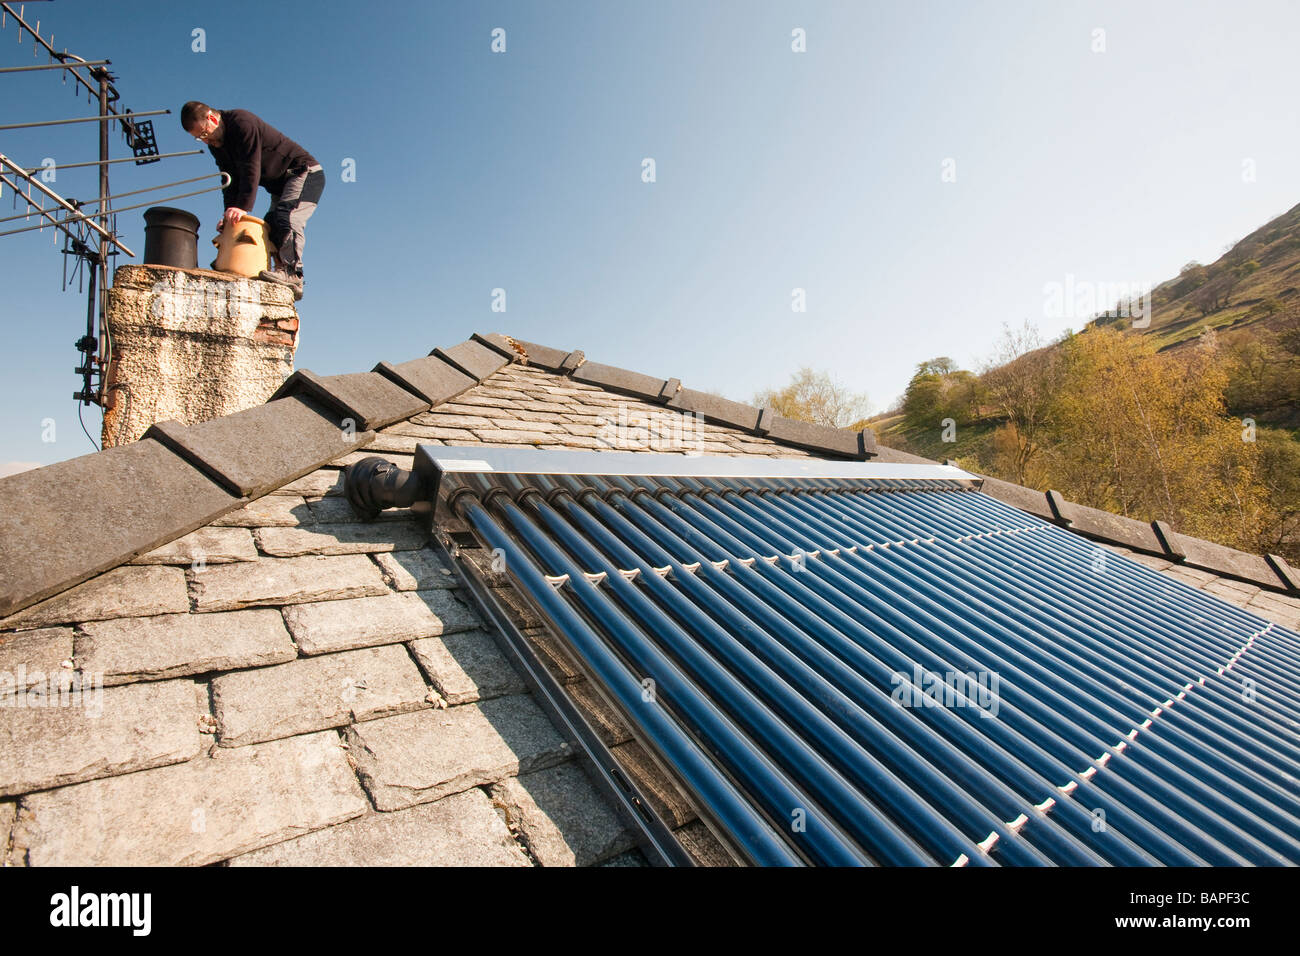 A solar panel water heater on a house roof in Ambleside Cumbria UK ...